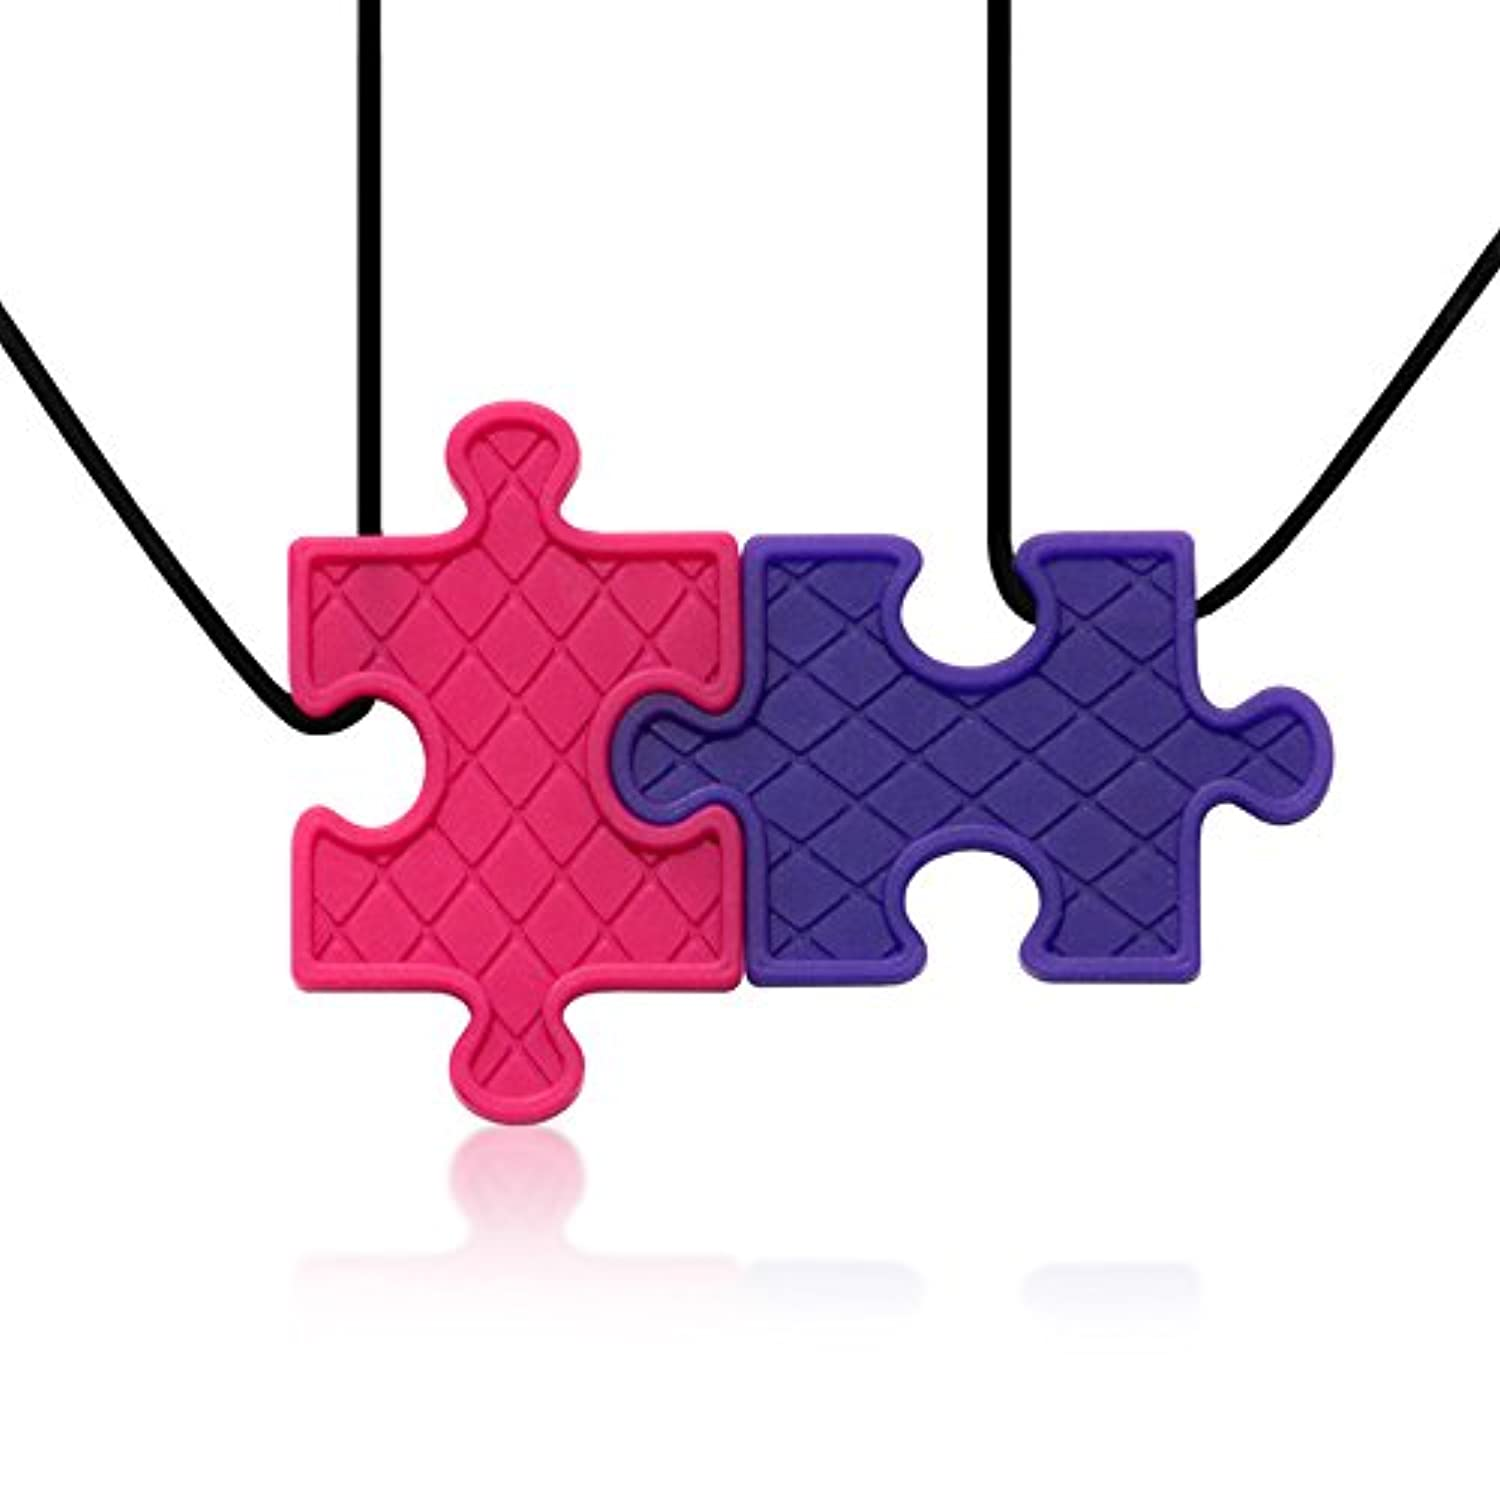 Puzzle Pendant Duo - Silicone Necklaces (Teething, Nursing, Sensory) (Fuchsia Pink/Plum Purple) by Siliconies